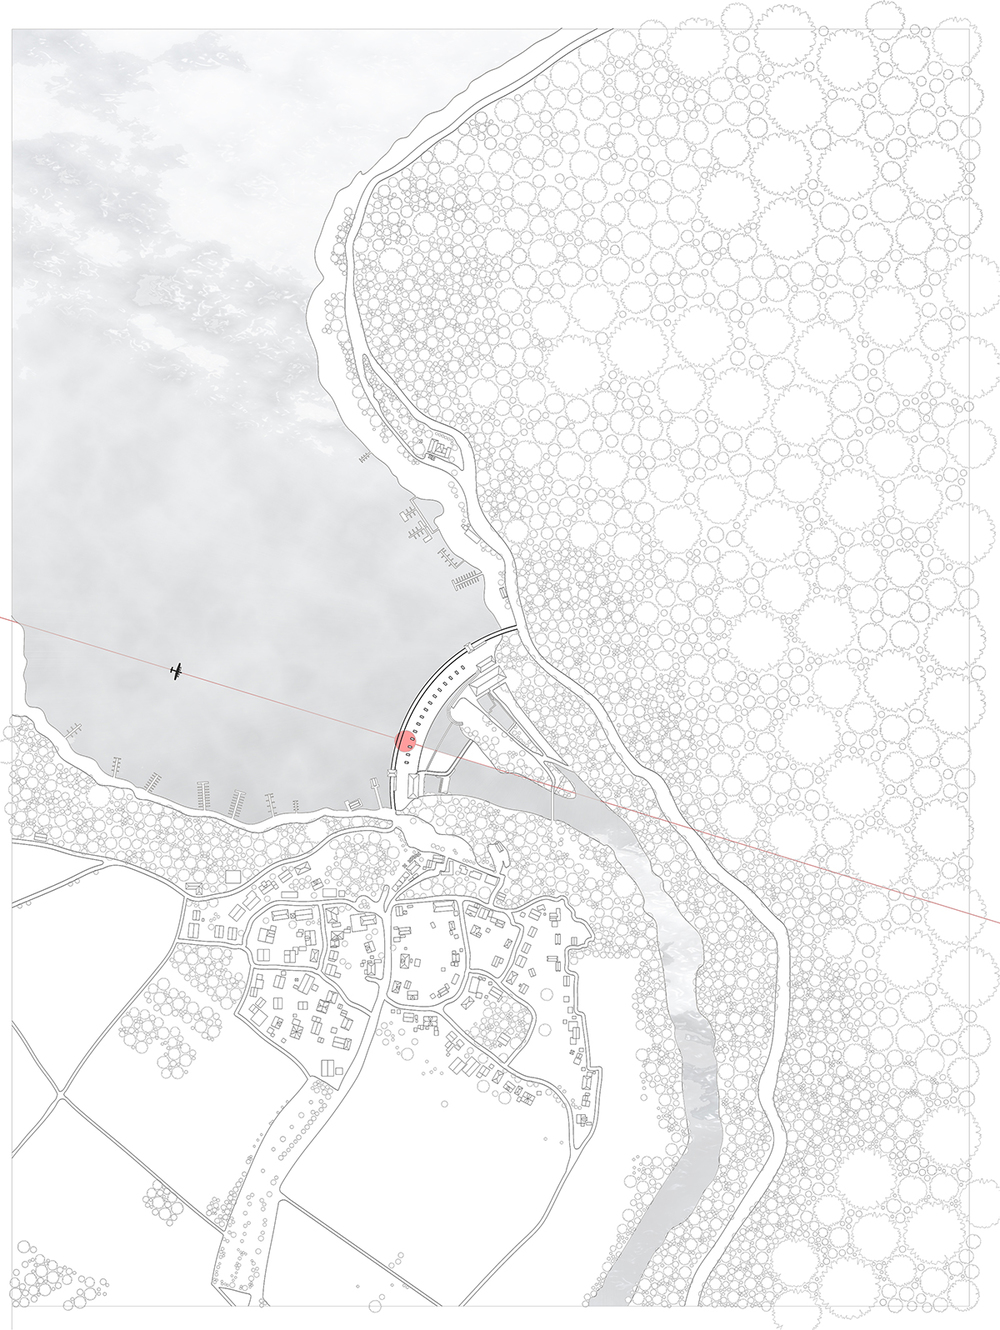 1203 - Site Plan with Plane Path - 1200 pixels.jpg